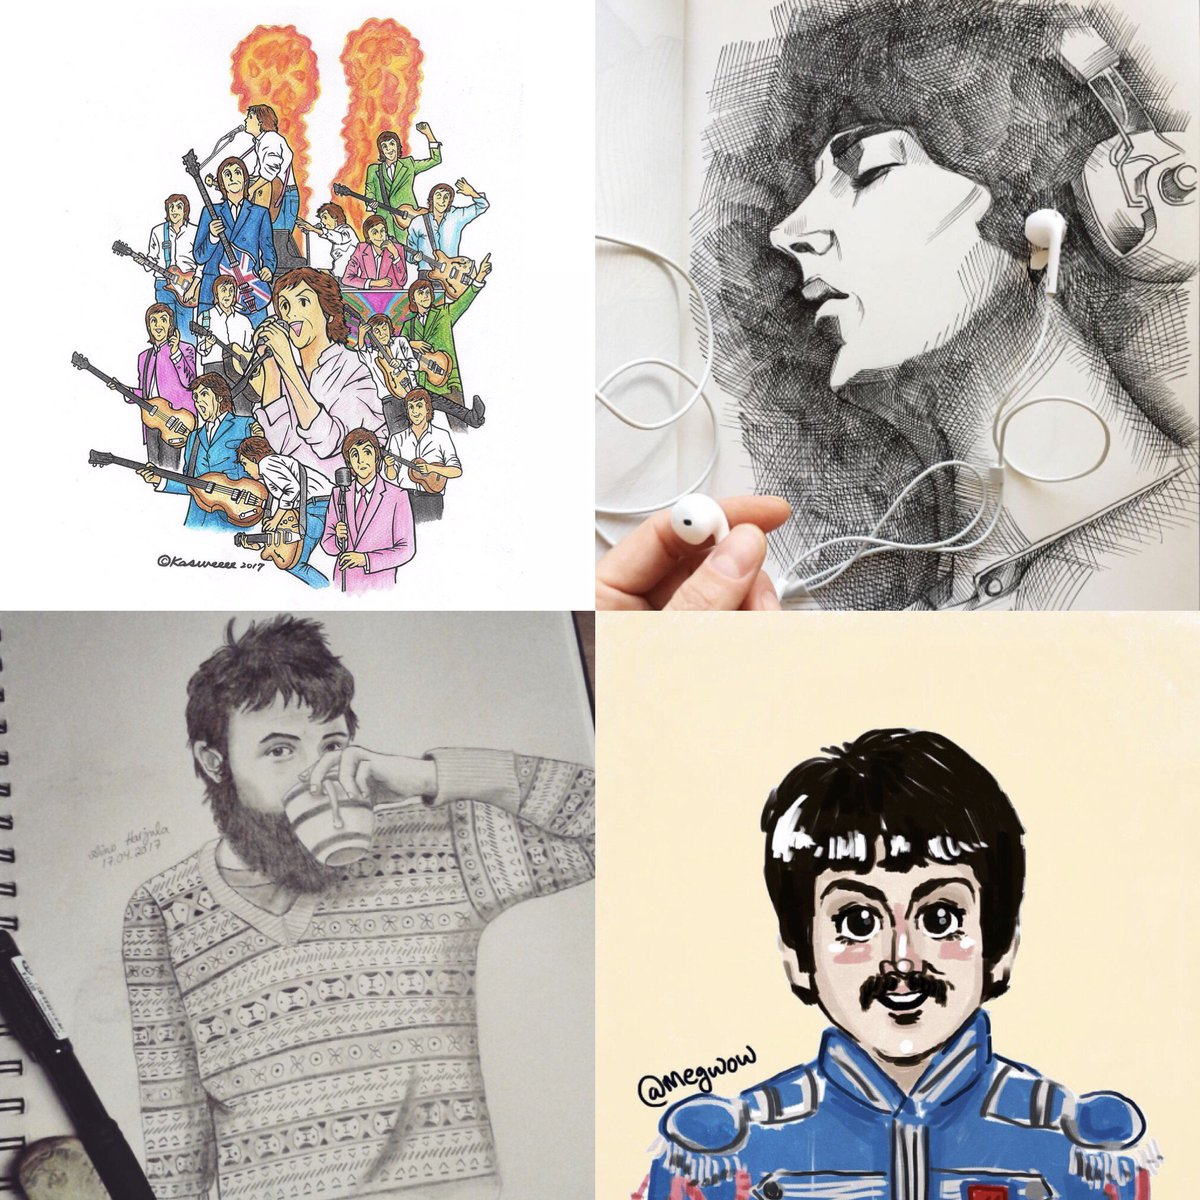 Paul McCartney On Twitter FanArtFriday By Instagram Users Kasweeee Puhnatsson Ainoheleenah And Megwow Share Your Fan Art With The Hashtag